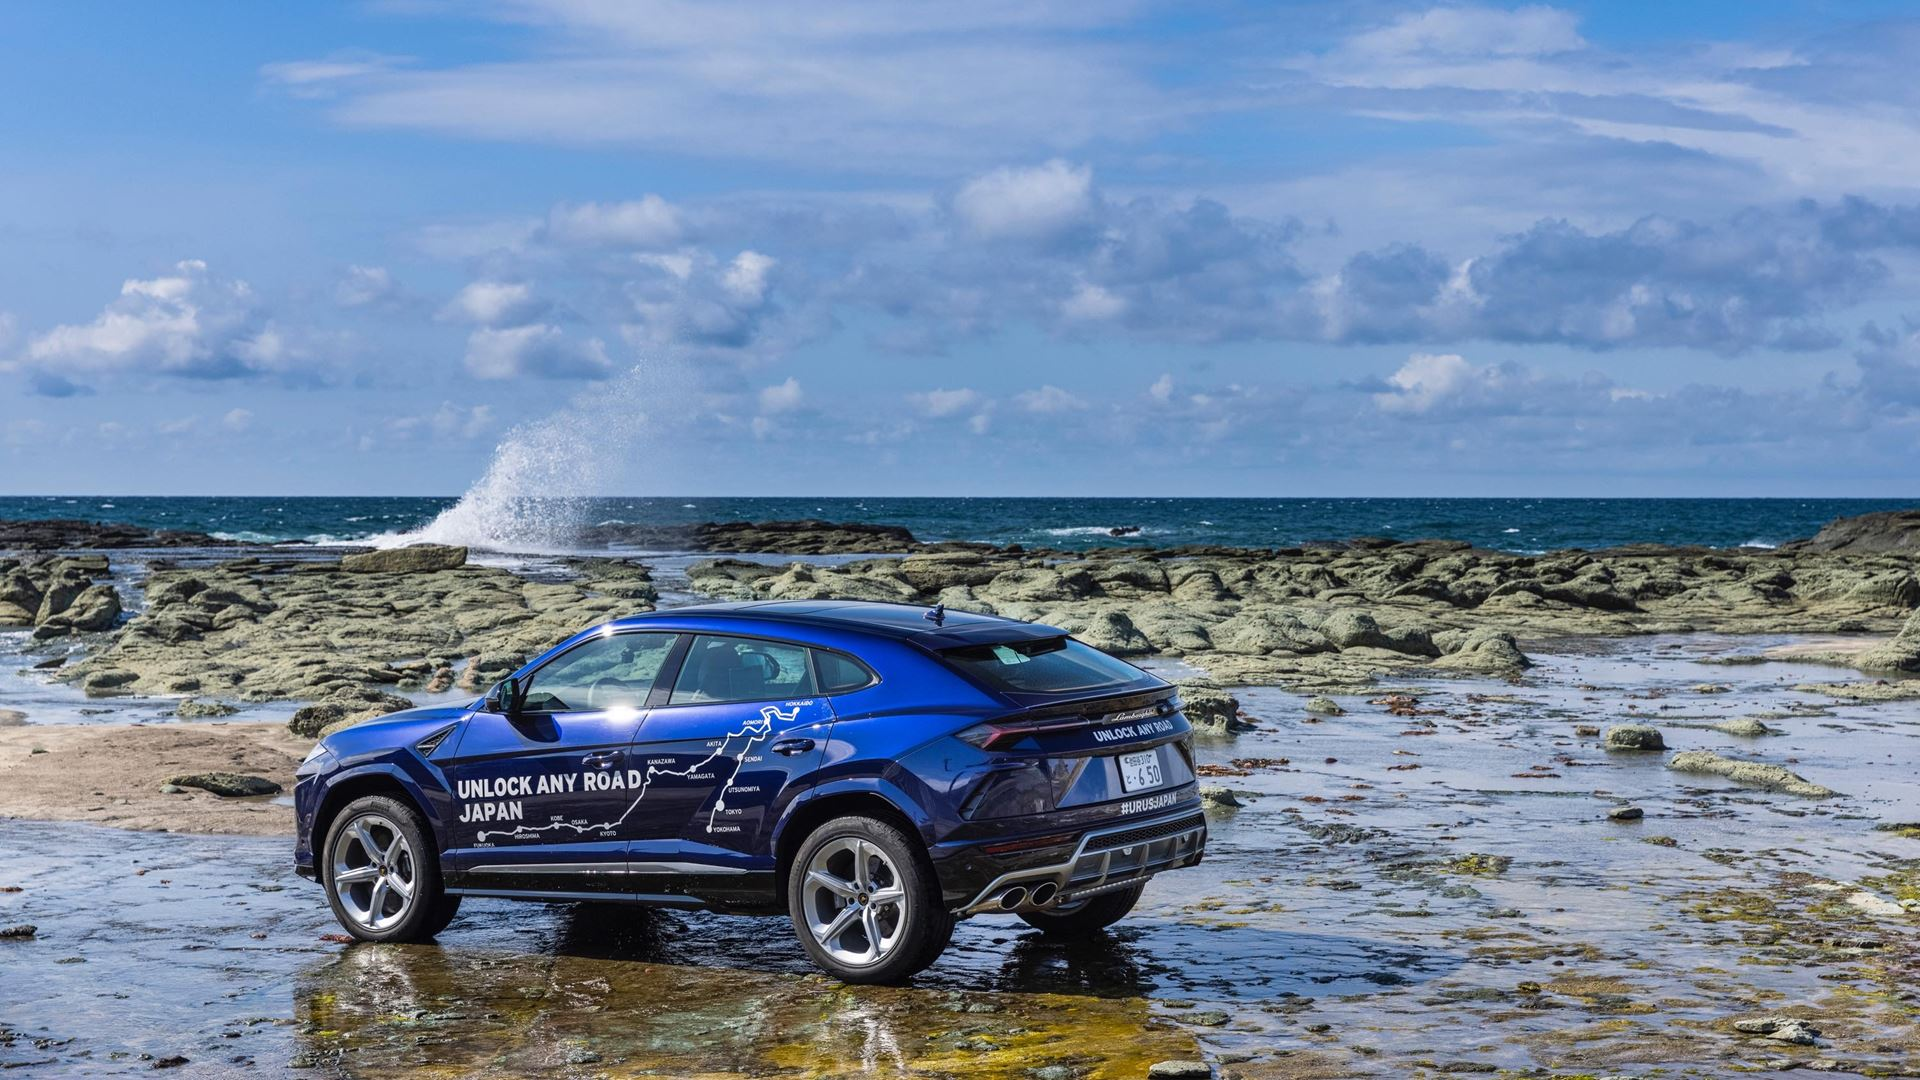 """""""UNLOCK ANY ROAD JAPAN"""" Urus expedition over 6.500 Km across Japan - Image 5"""